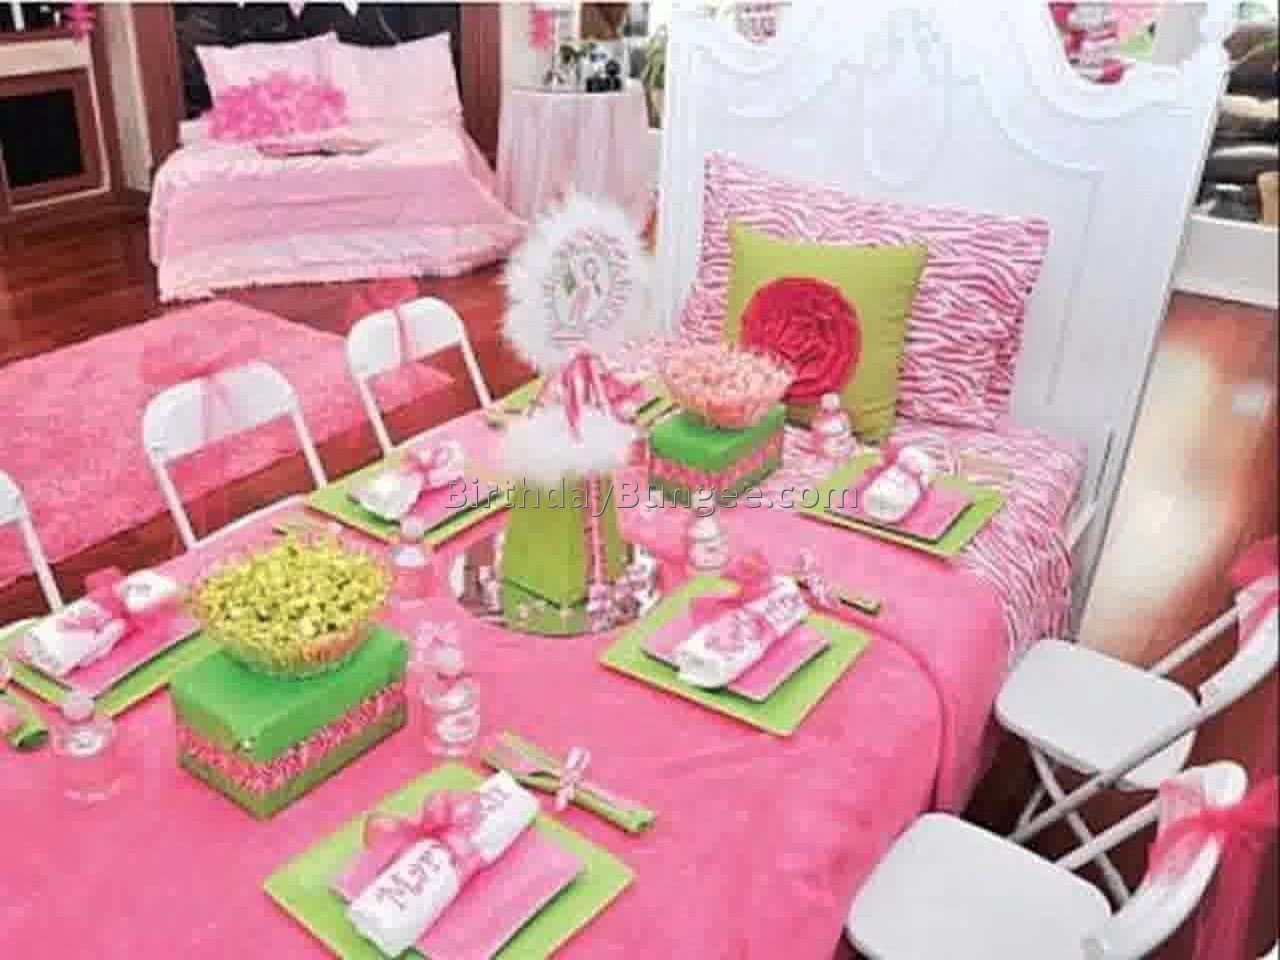 10 Best Birthday Party Ideas For 6 Year Old Girl girl birthday party ideas for year olds home design ideas 1 2020